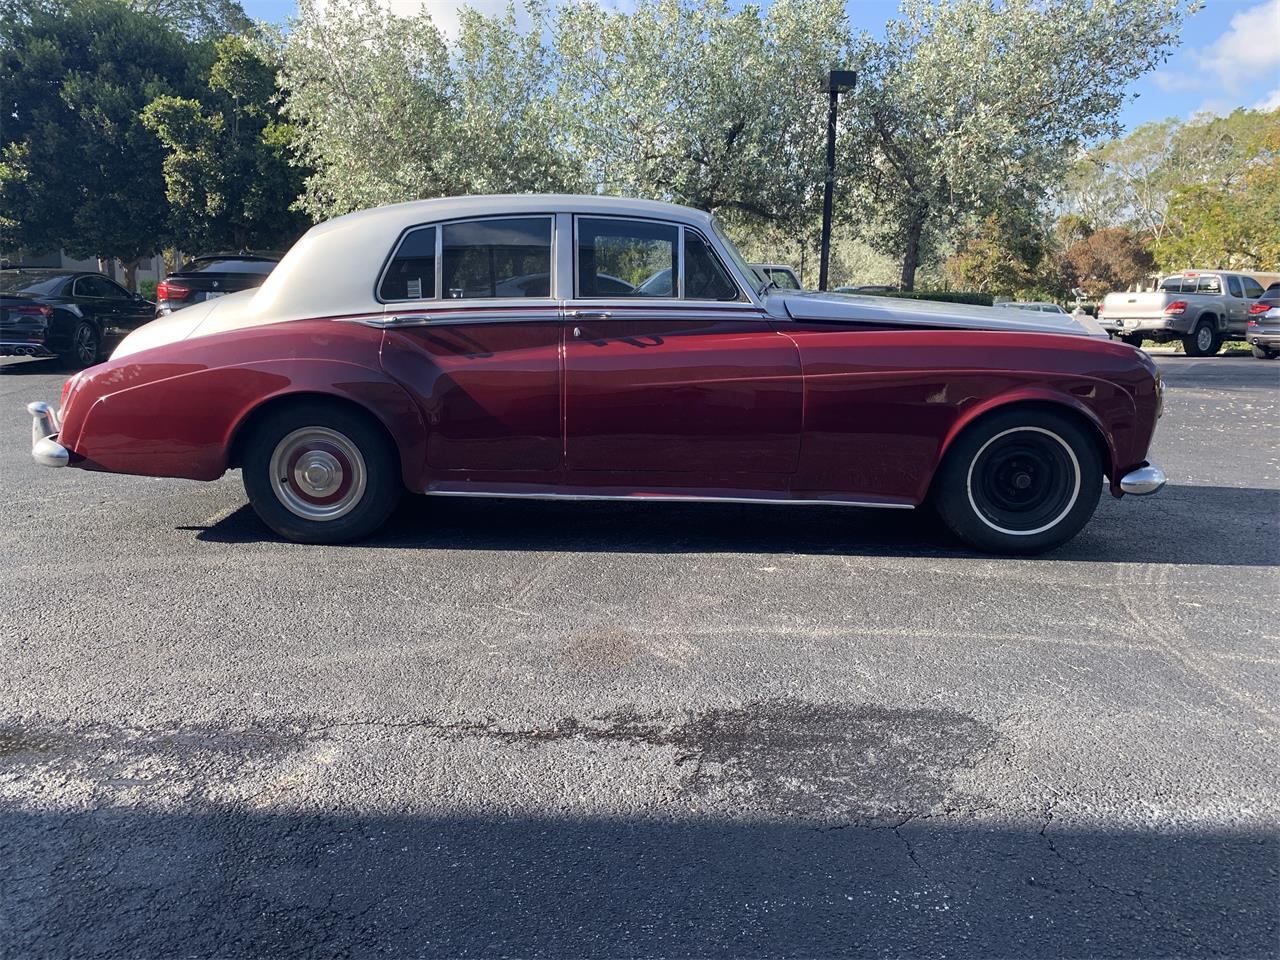 Large Picture of '64 Rolls-Royce Silver Cloud III - $49,000.00 Offered by European Autobody, Inc. - PXPV